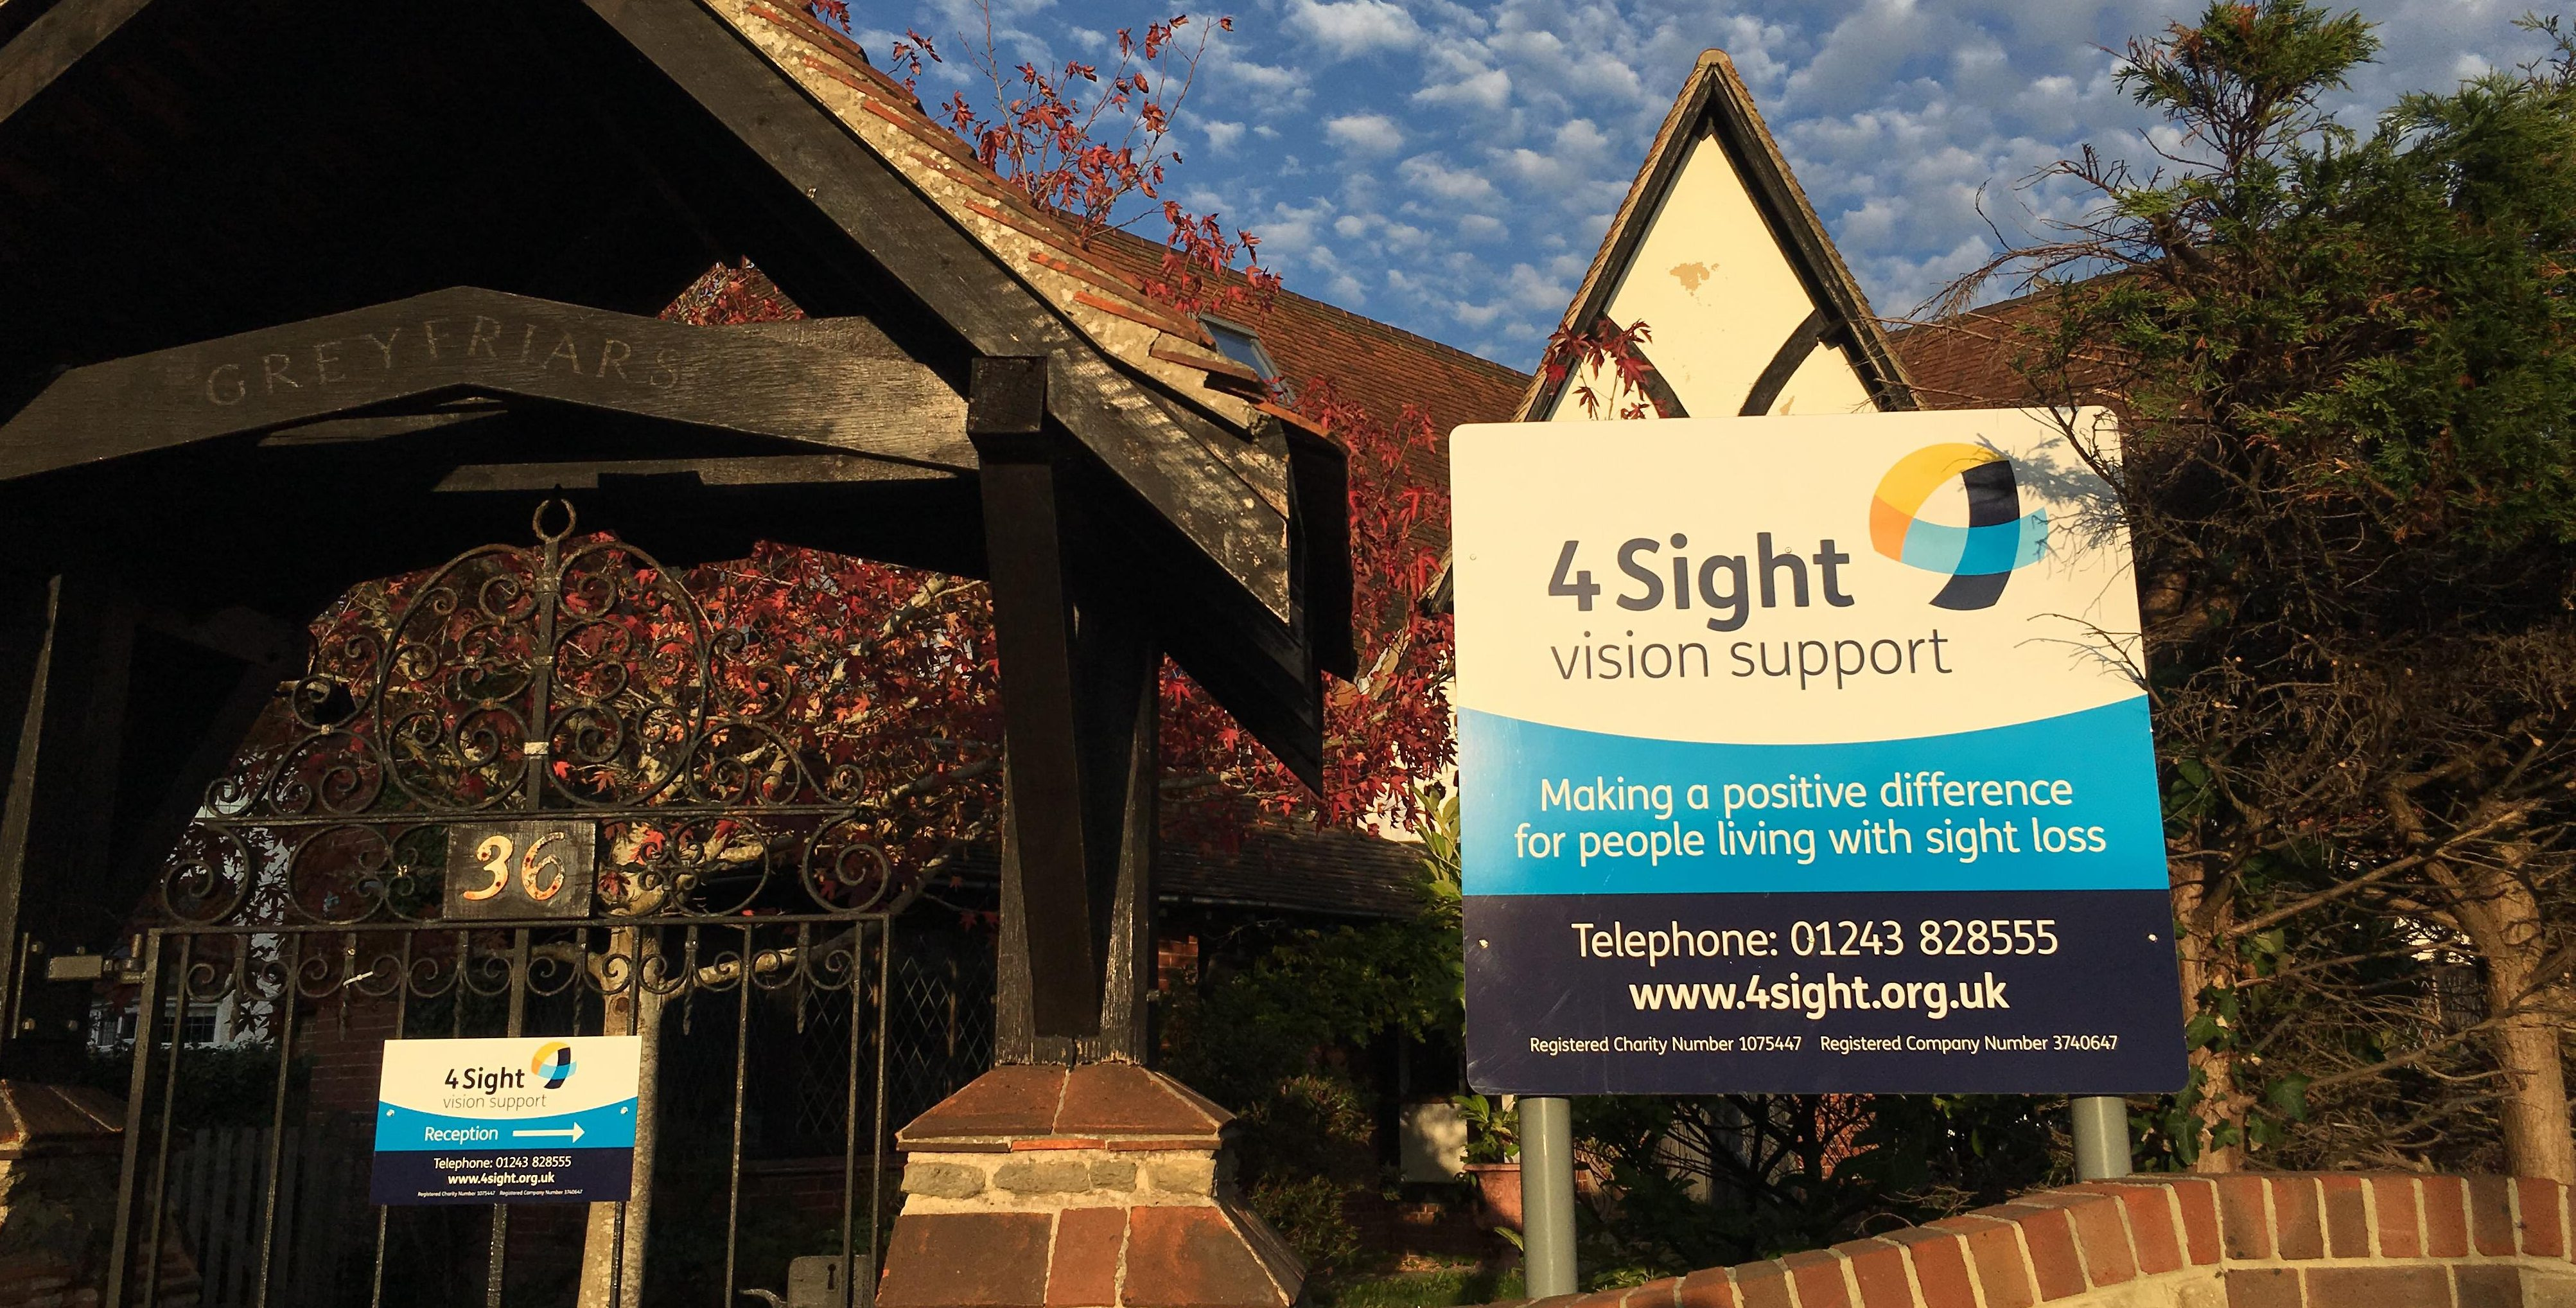 arts and crafts centre building with charity signage of 4Sight Vision Support in front. Signange mix of white, blue shades and touches of yellow. Blur sky with clouds in background.